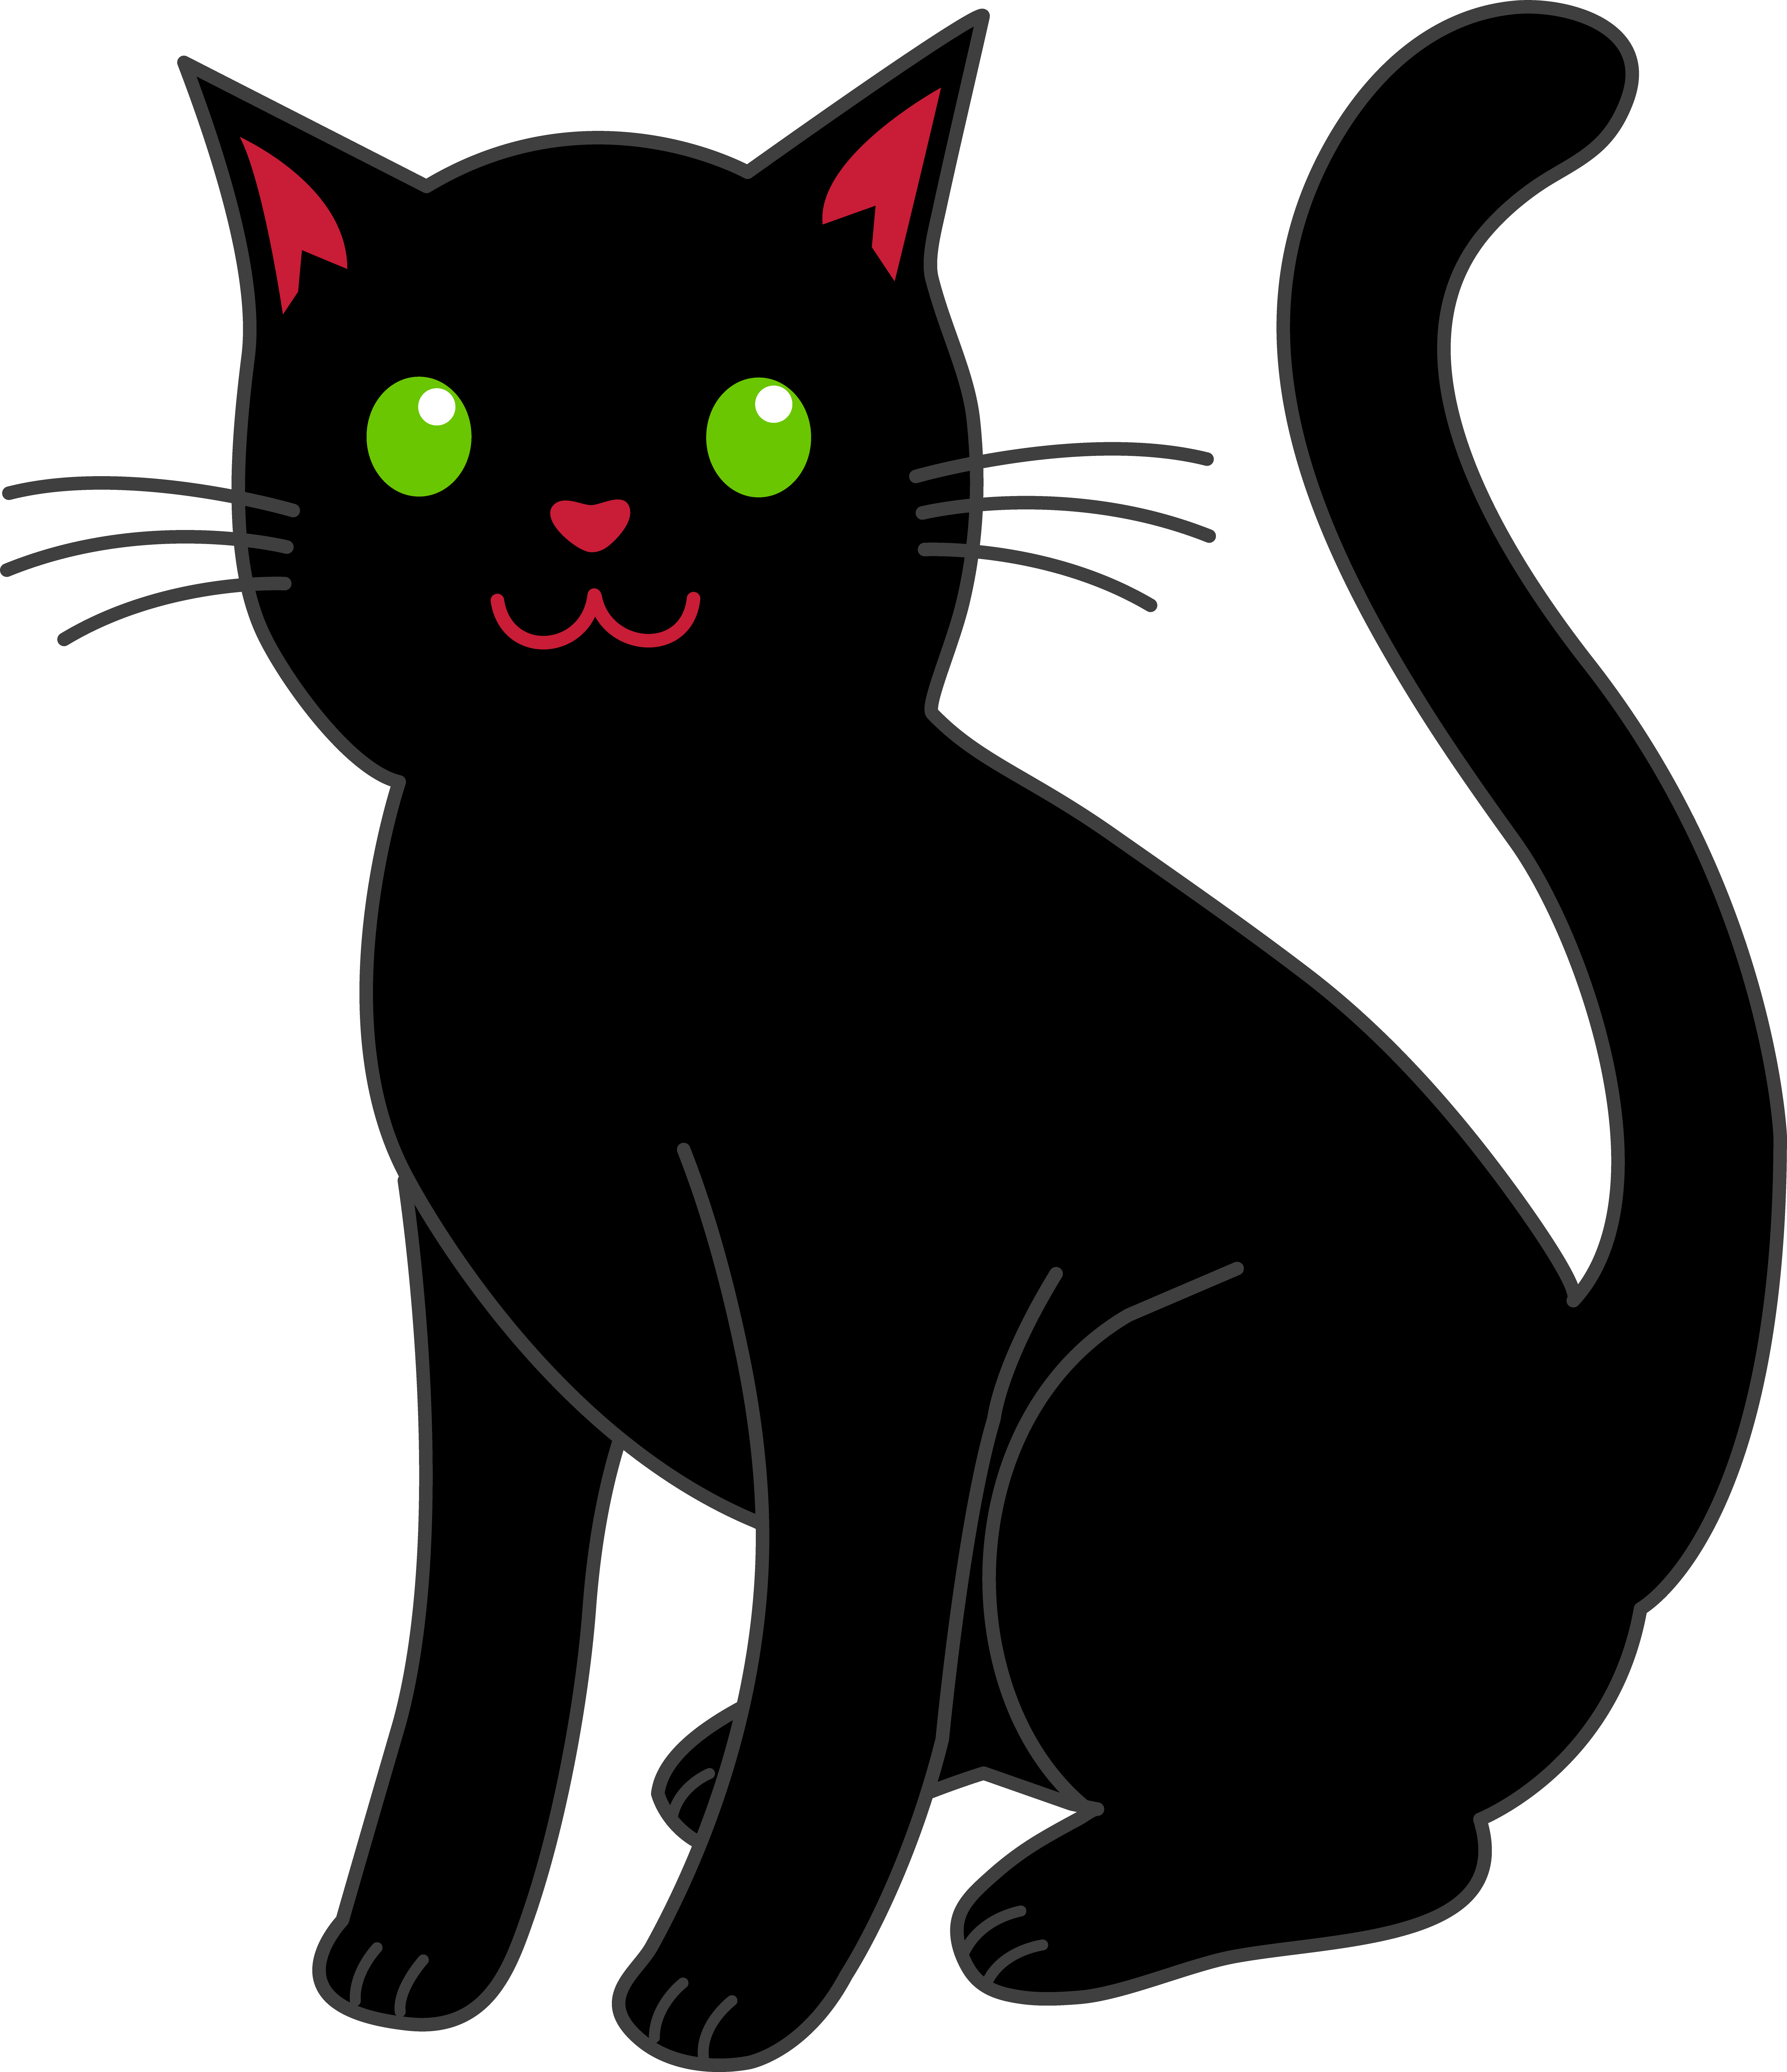 Simple Black Halloween Cat - Free Clip Art clip art royalty free download